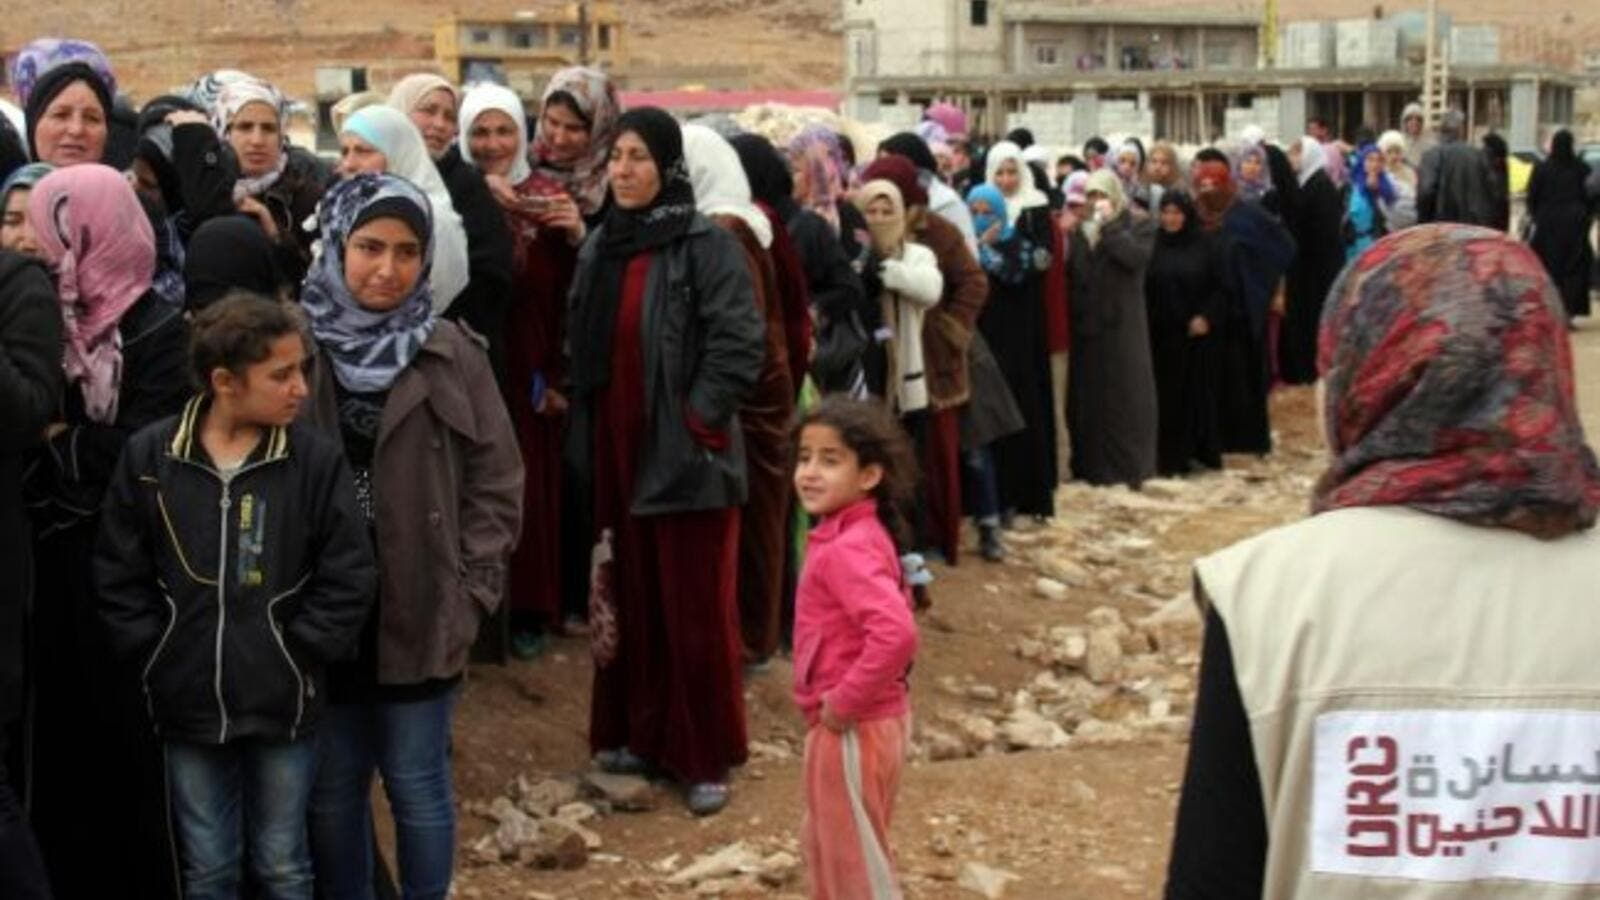 Some 10,000 Syrian refugees in Lebanon's Bekaa Valley have been ordered to pick up and move elsewhere. (AFP/File)